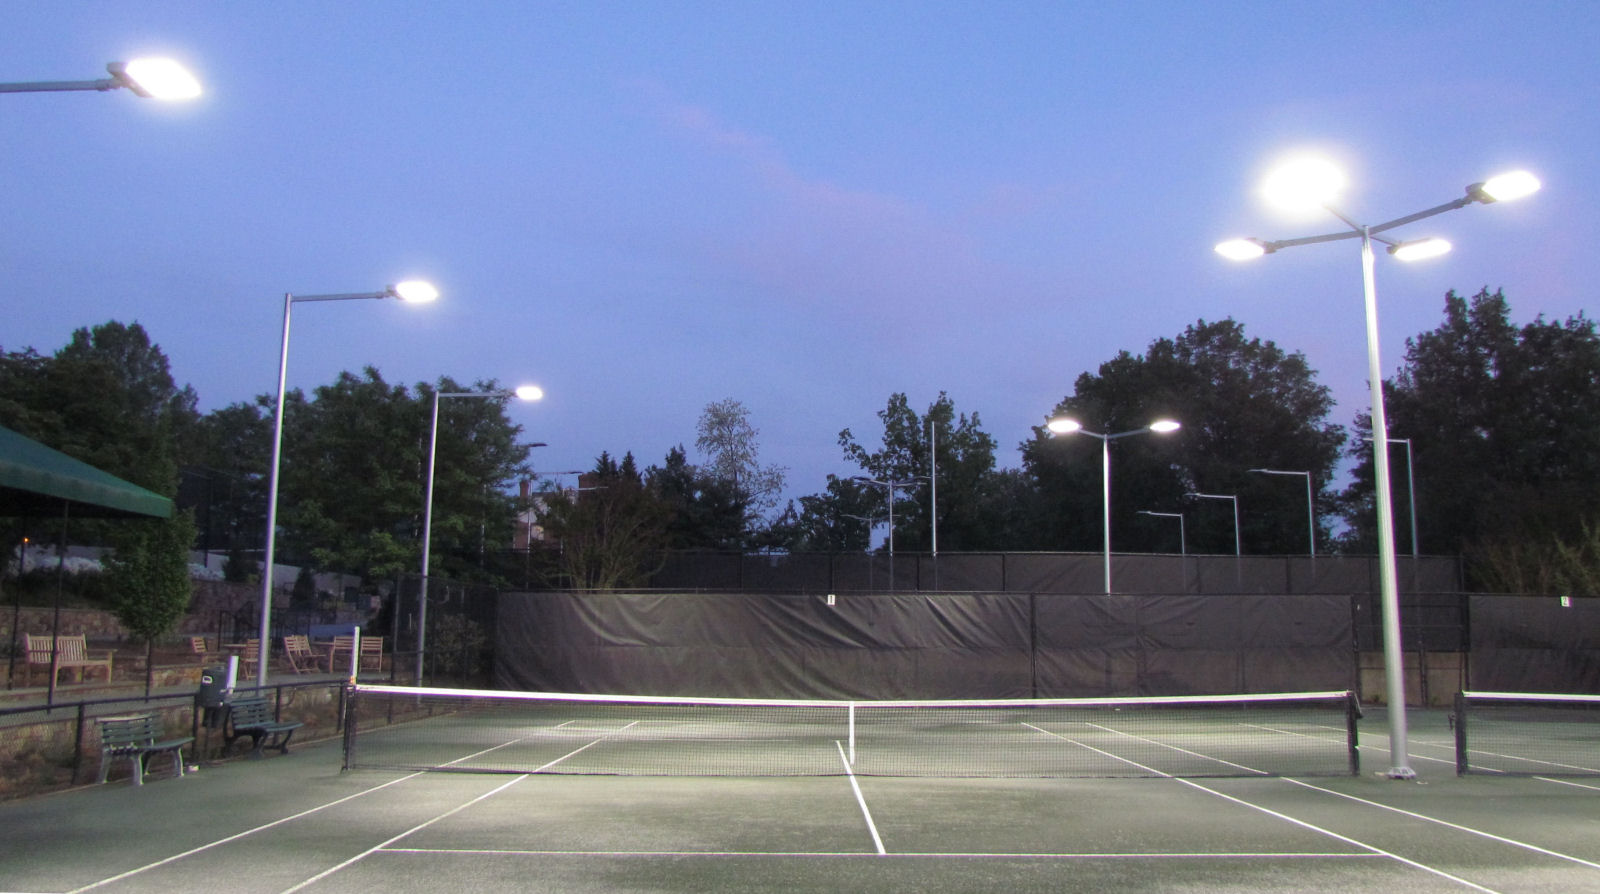 outdoor tennis court-2